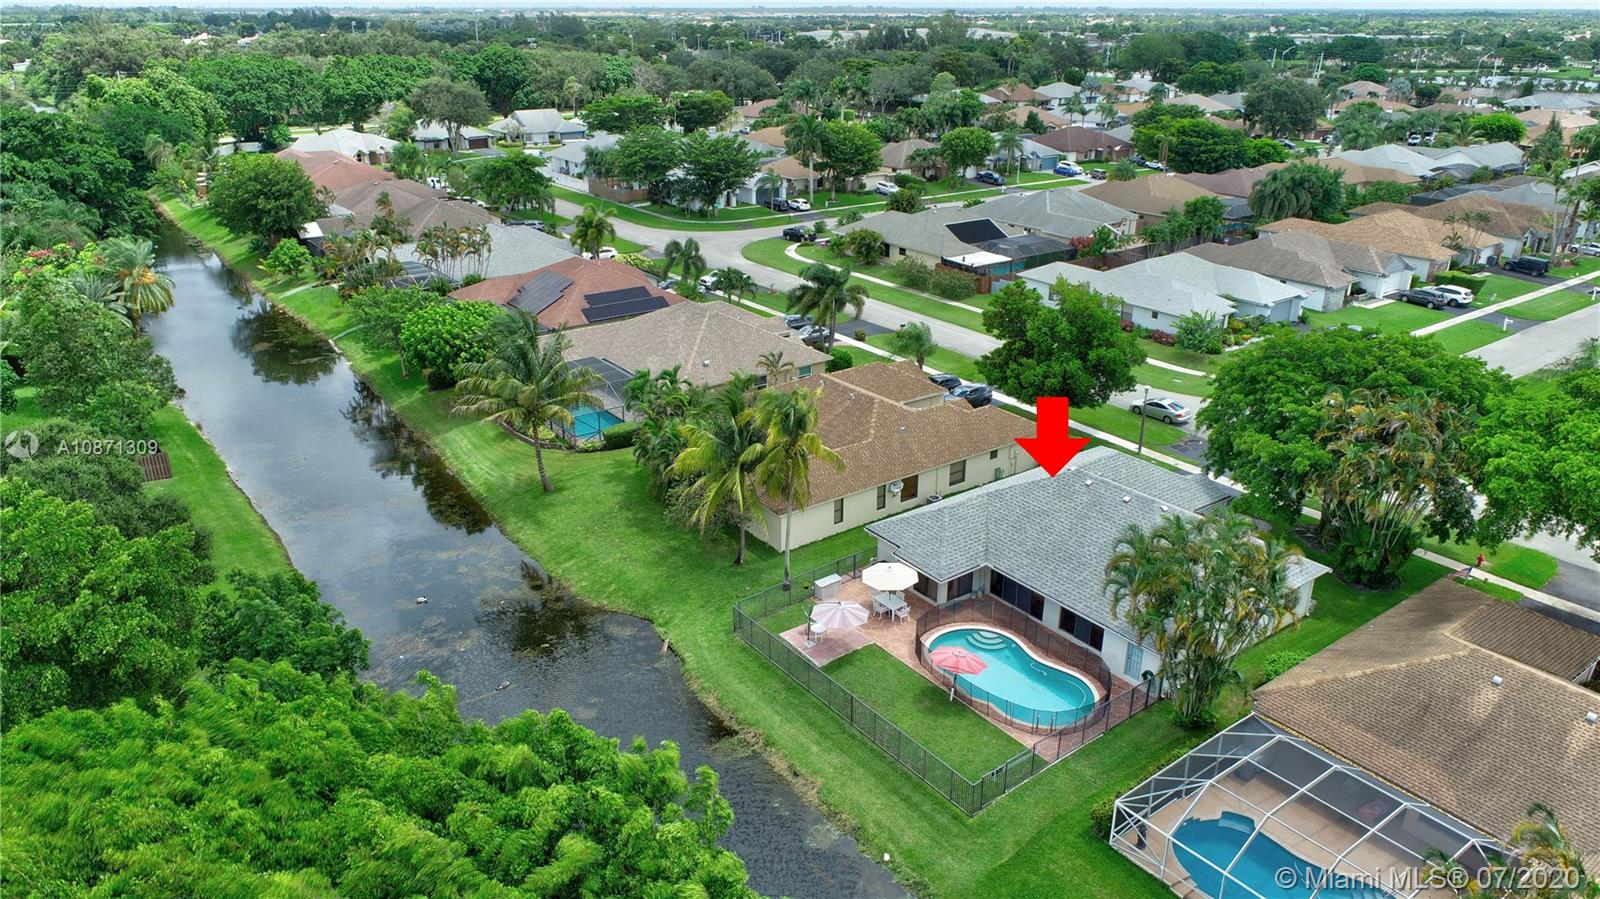 Listing A10871309 - Large Photo # 40